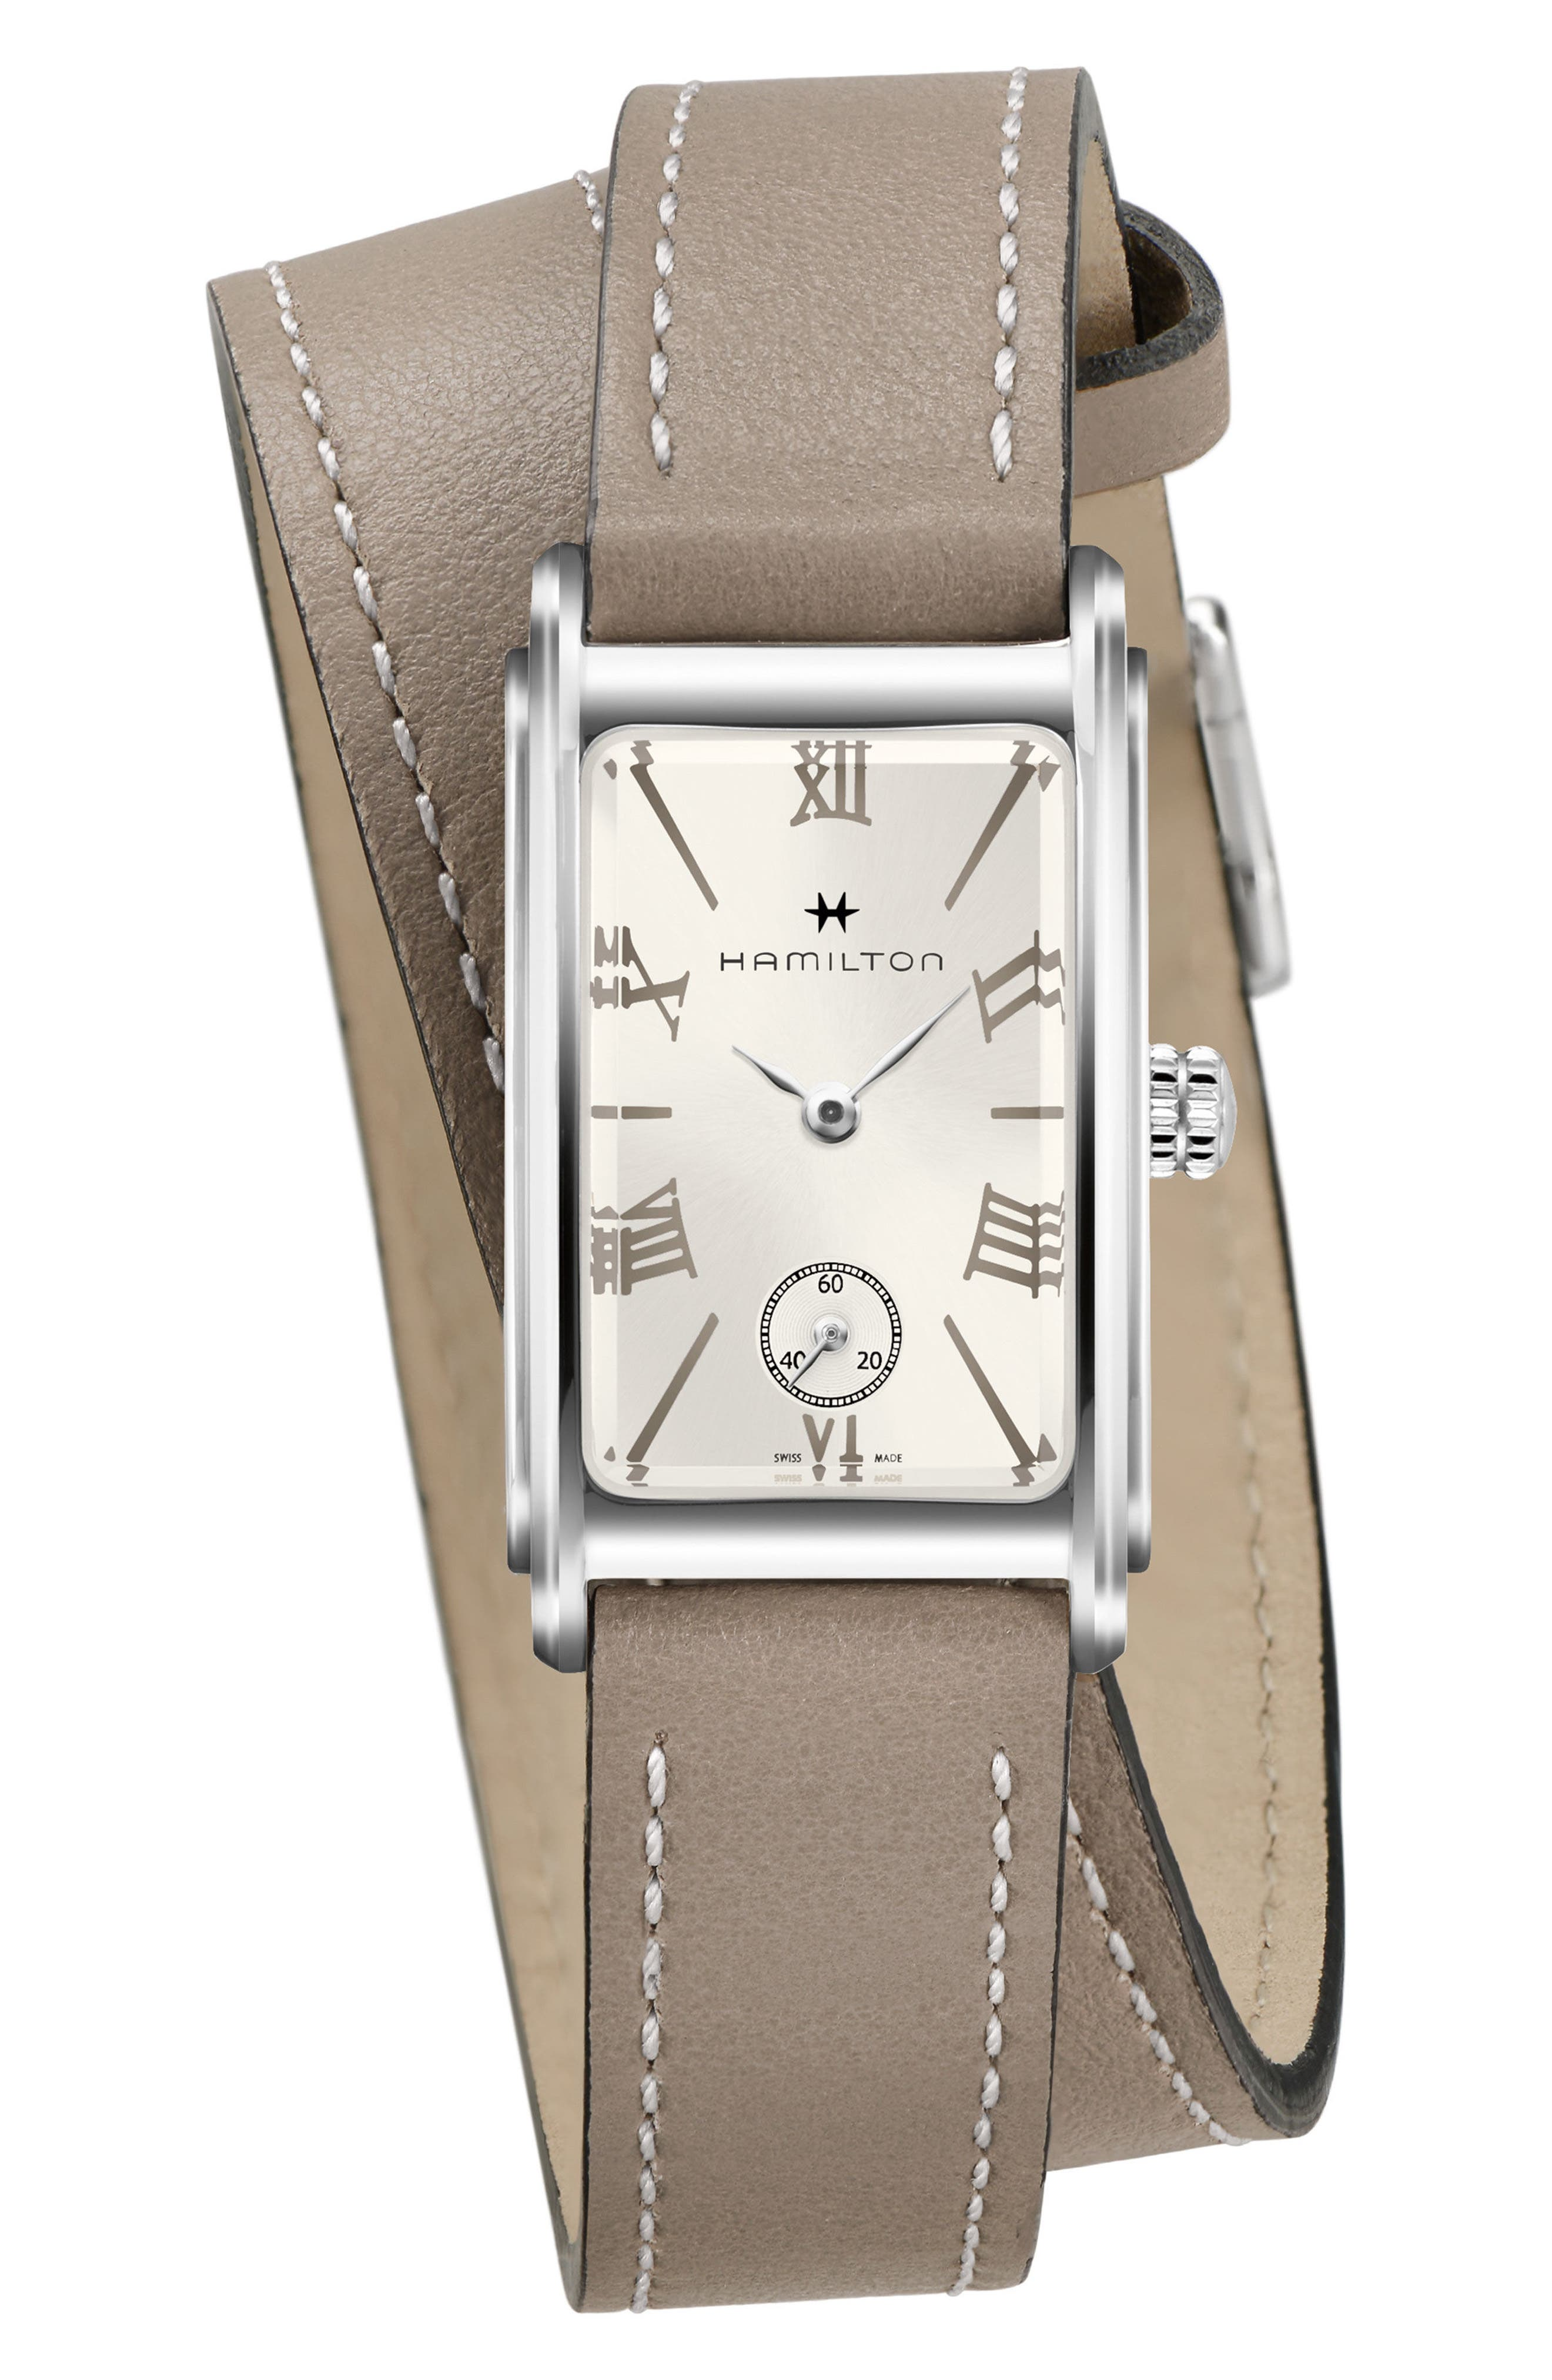 Hamilton Ardmore Wrap Leather Strap Watch, 18mm x 27mm